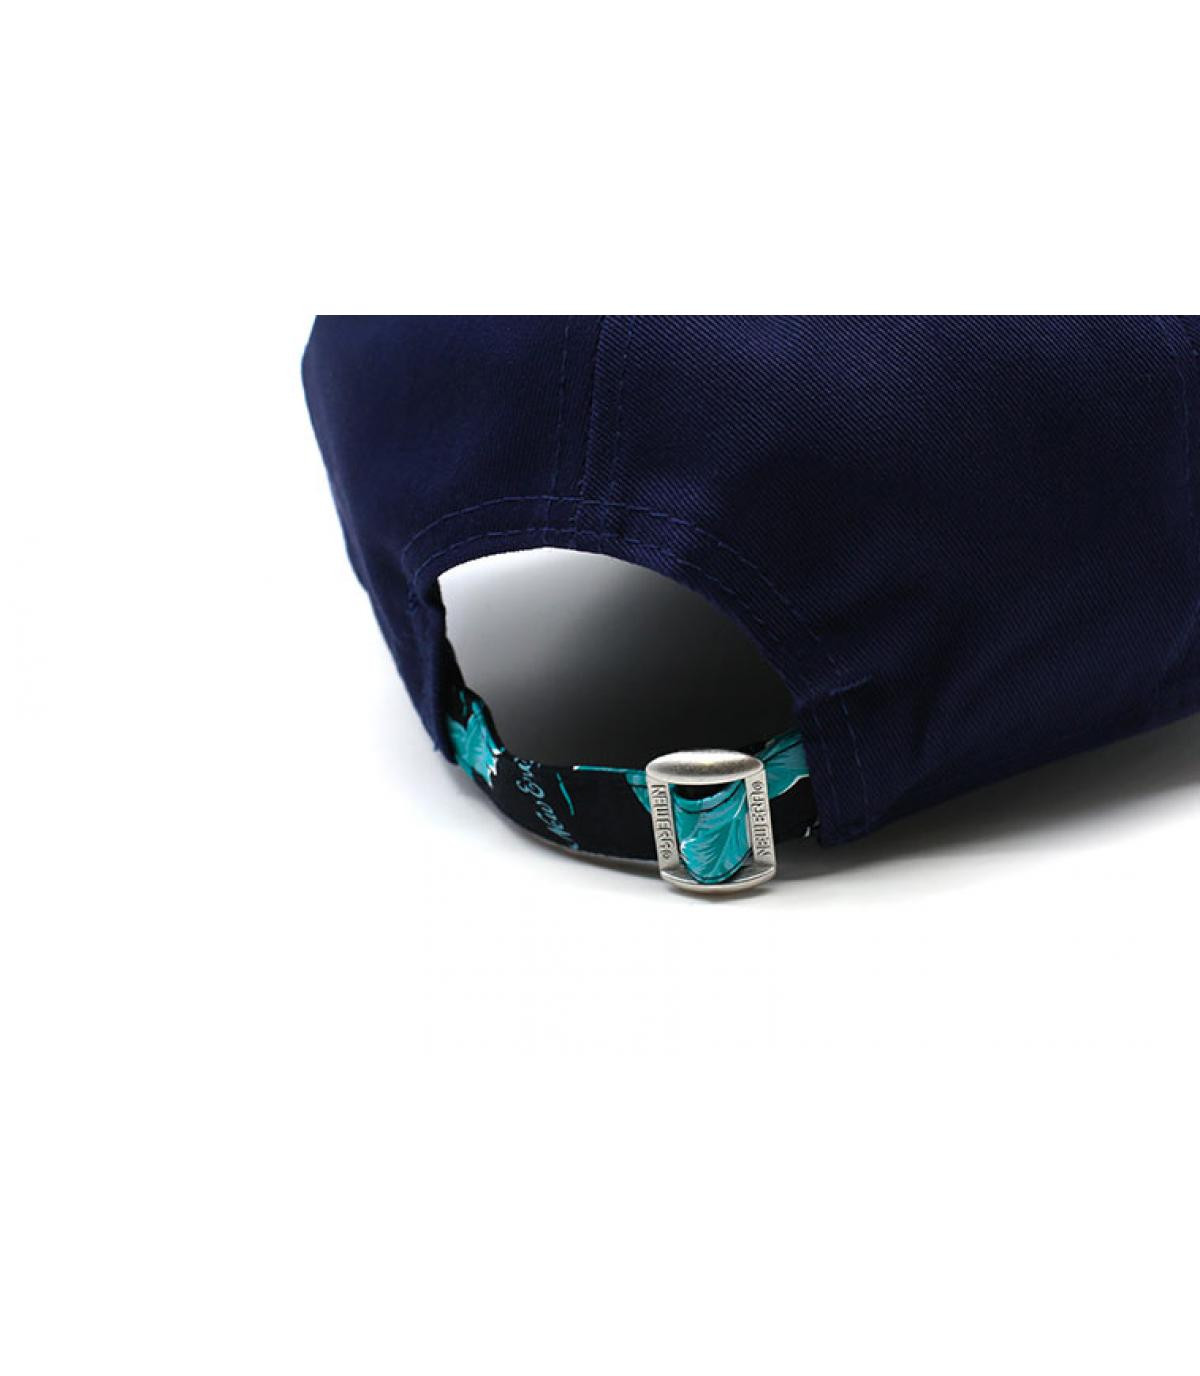 Details MLB Light Weight NY 9Forty nay teal - afbeeling 5